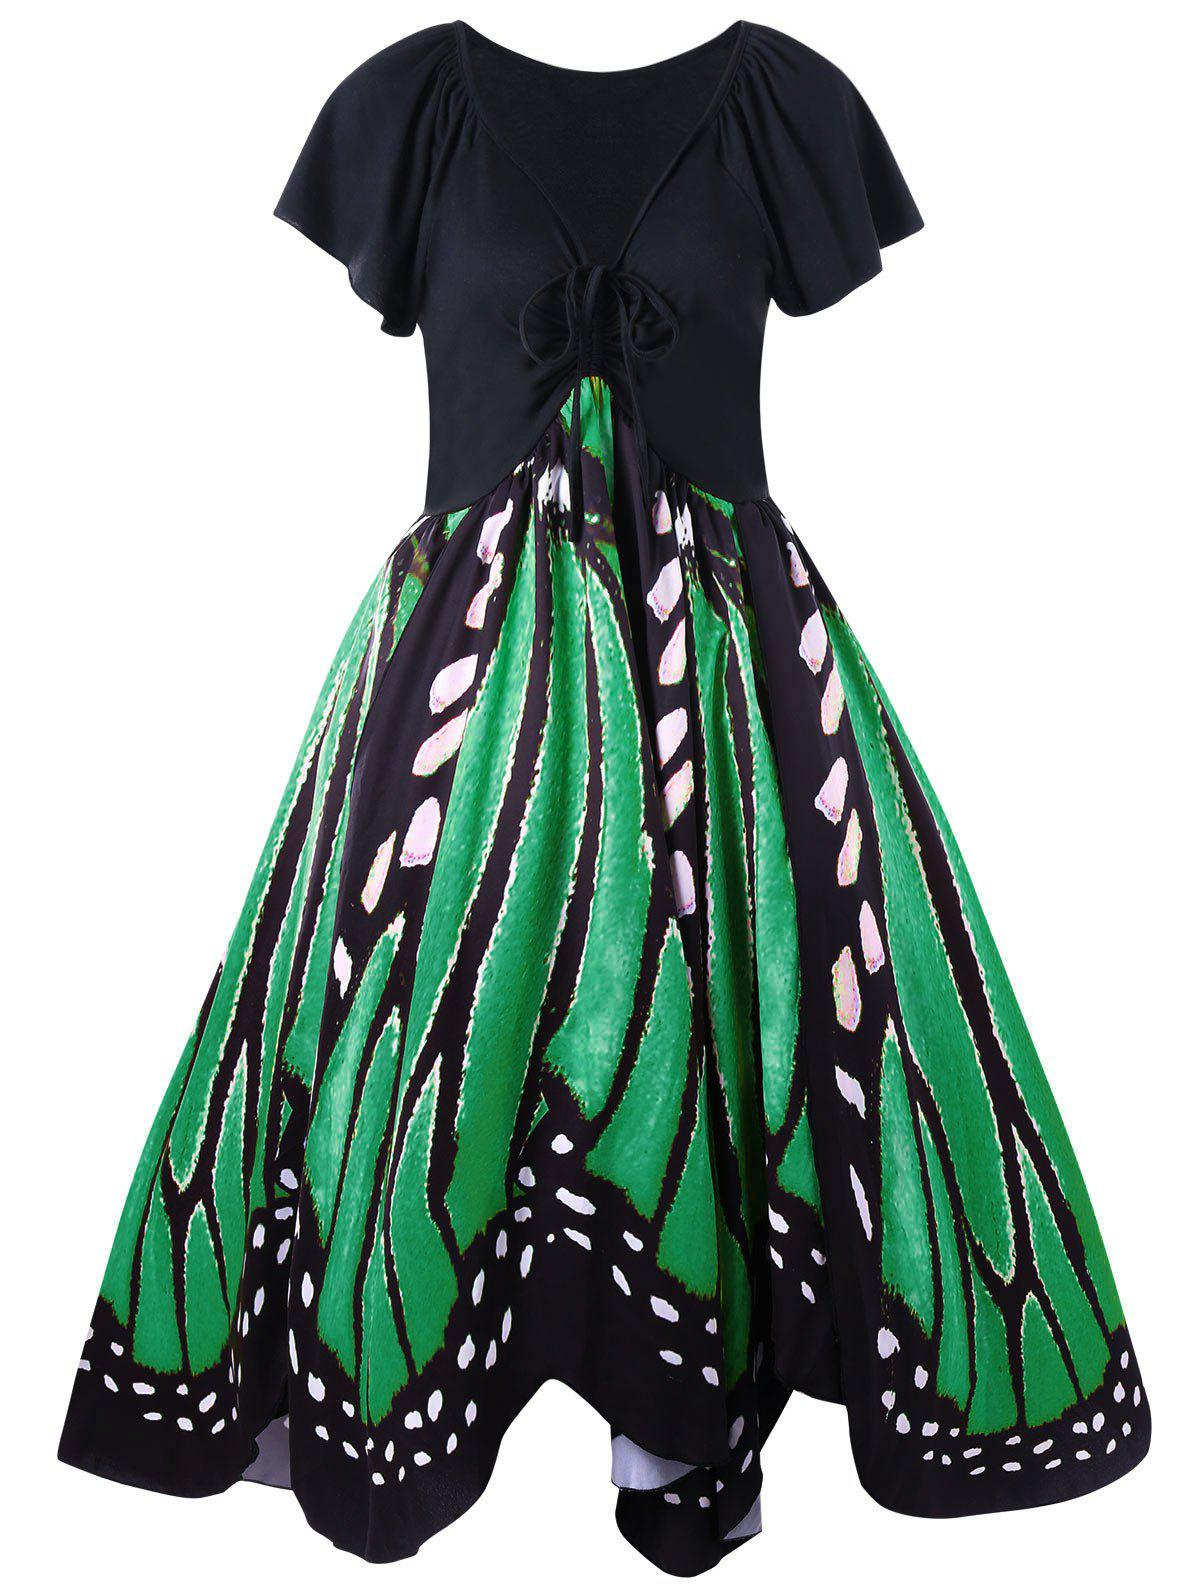 Plus Size Low Cut Butterfly Print Swing DressWOMEN<br><br>Size: 3XL; Color: GREEN; Style: Vintage; Material: Polyester,Spandex; Silhouette: A-Line; Dresses Length: Knee-Length; Neckline: Plunging Neck; Sleeve Length: Short Sleeves; Pattern Type: Butterfly; With Belt: No; Season: Fall,Spring; Weight: 0.3700kg; Package Contents: 1 x Dress;